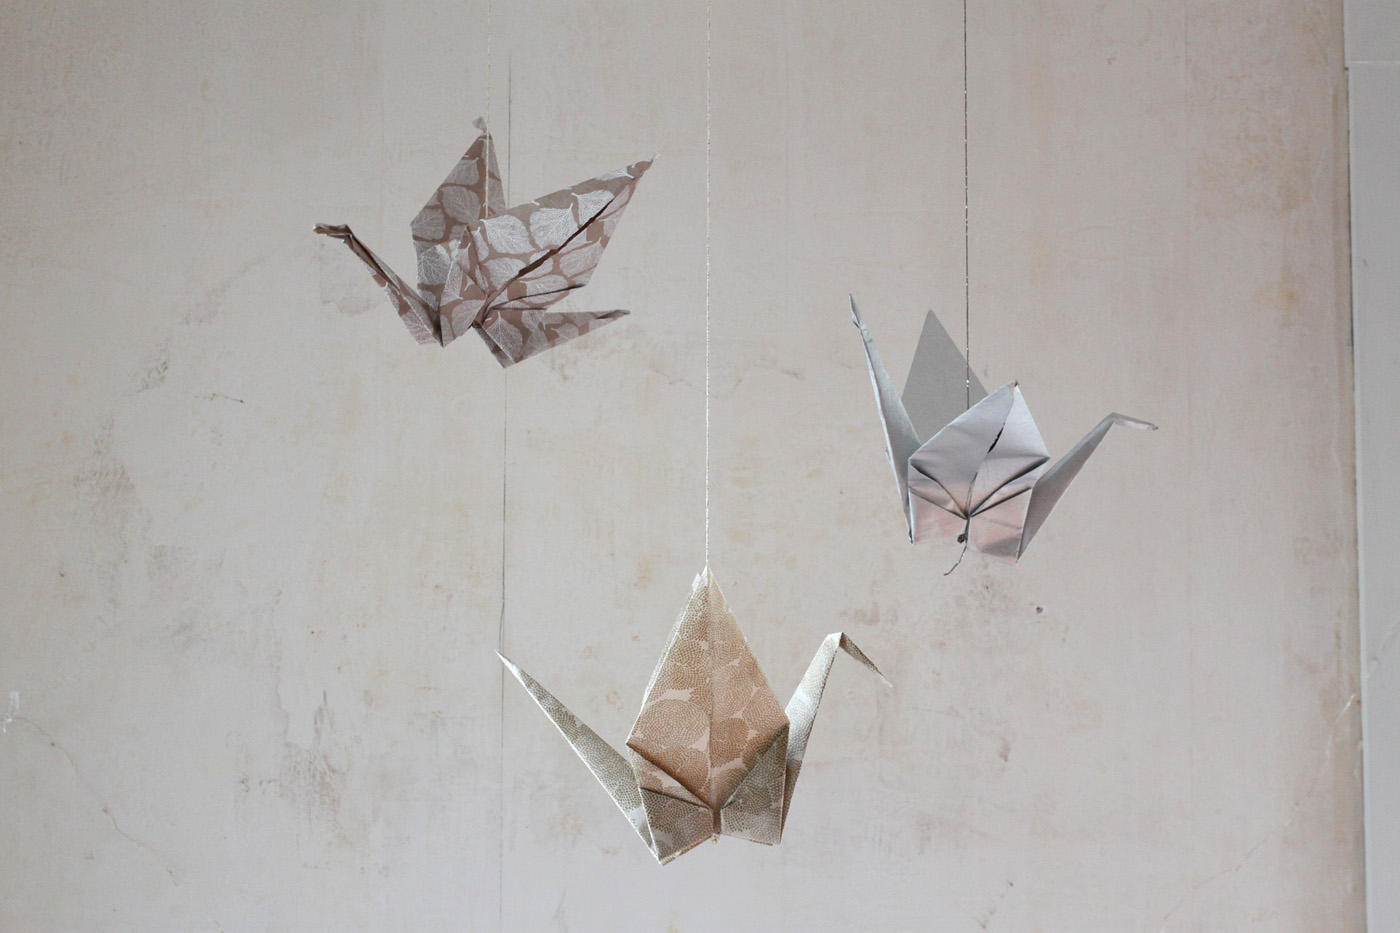 DIY large paper cranes, finished 1, by Justine Hand for Remodelista.jpg